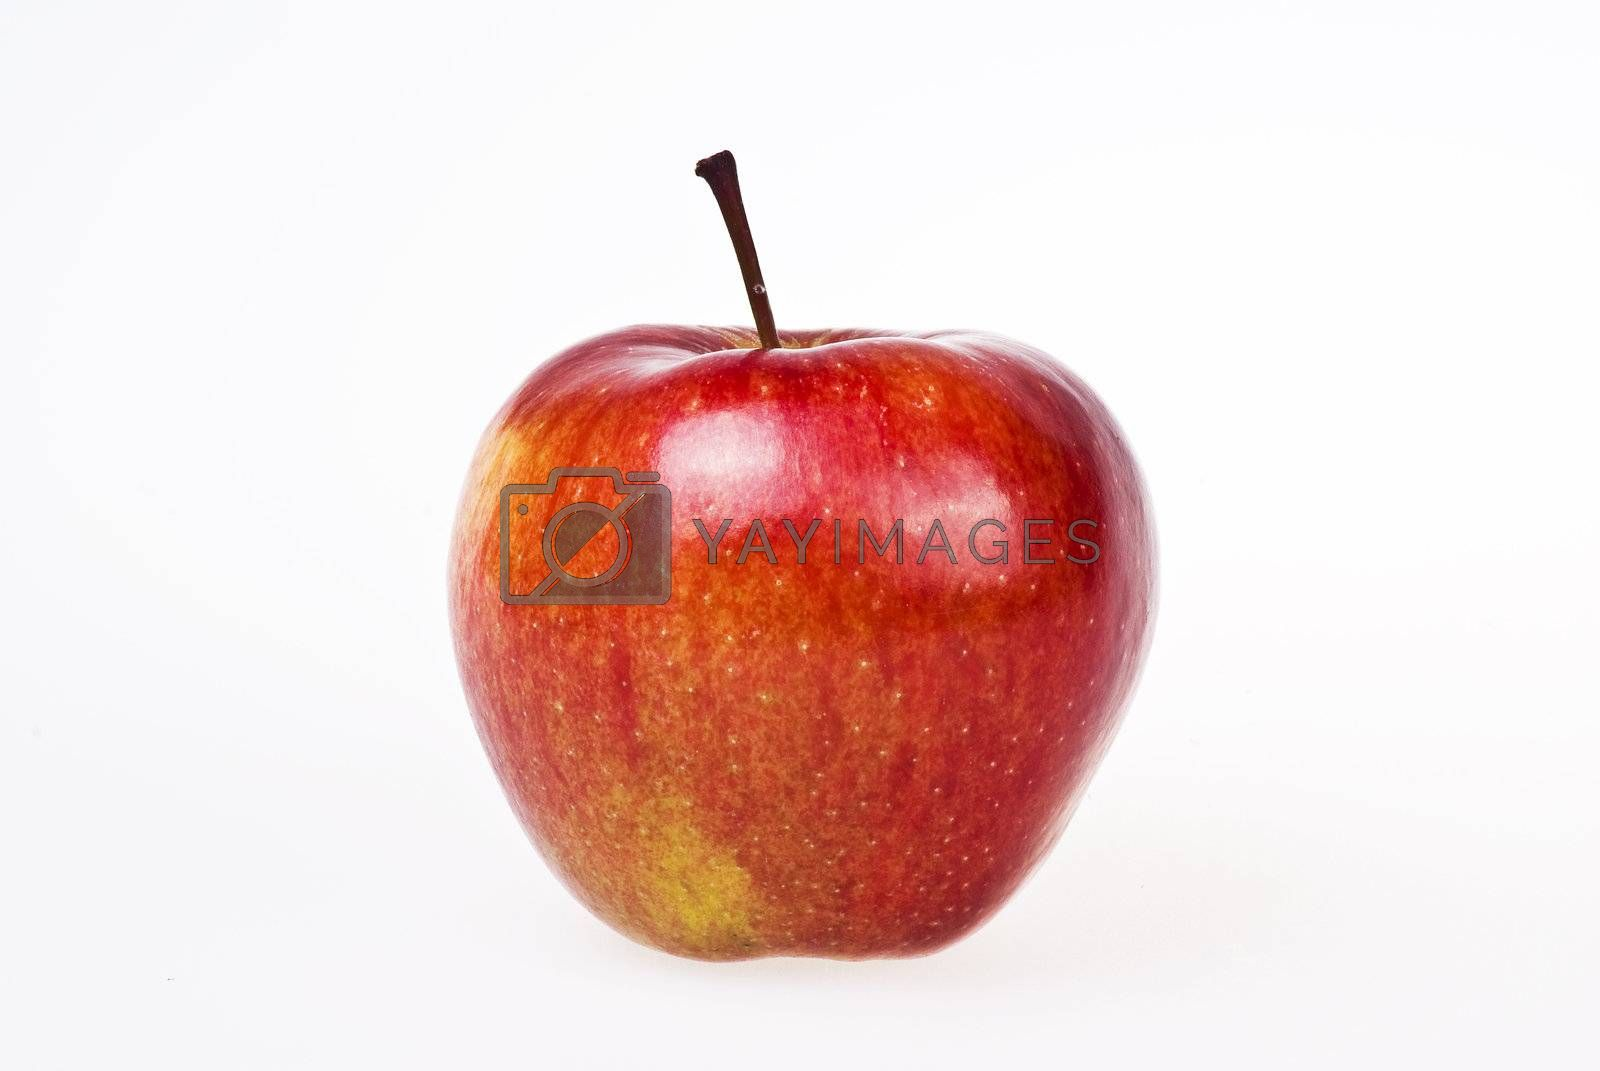 Red apple by caldix